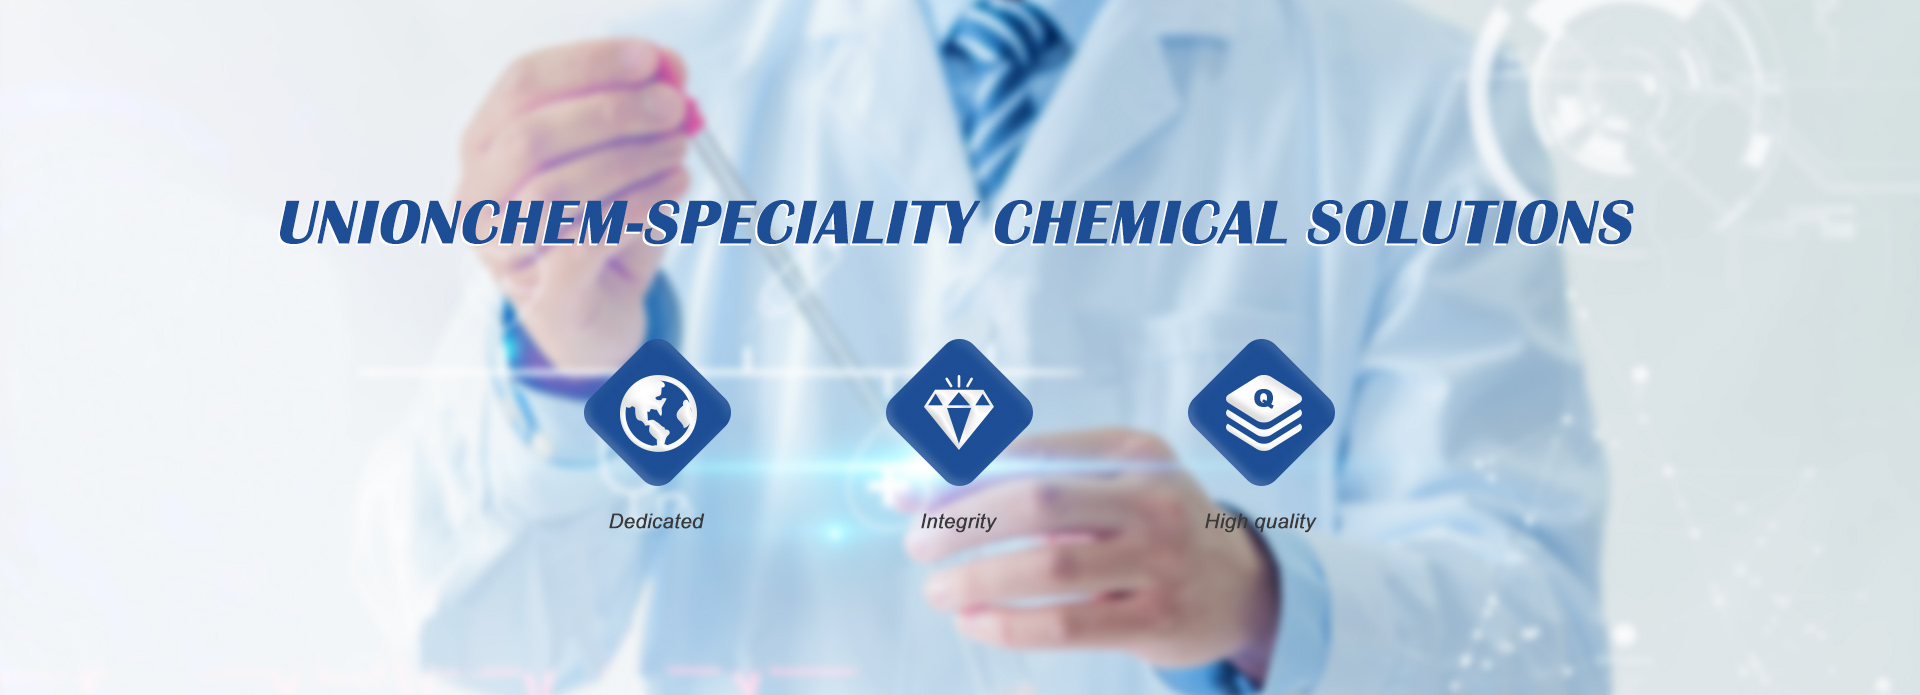 Unionchem-Speciality chemical solutions